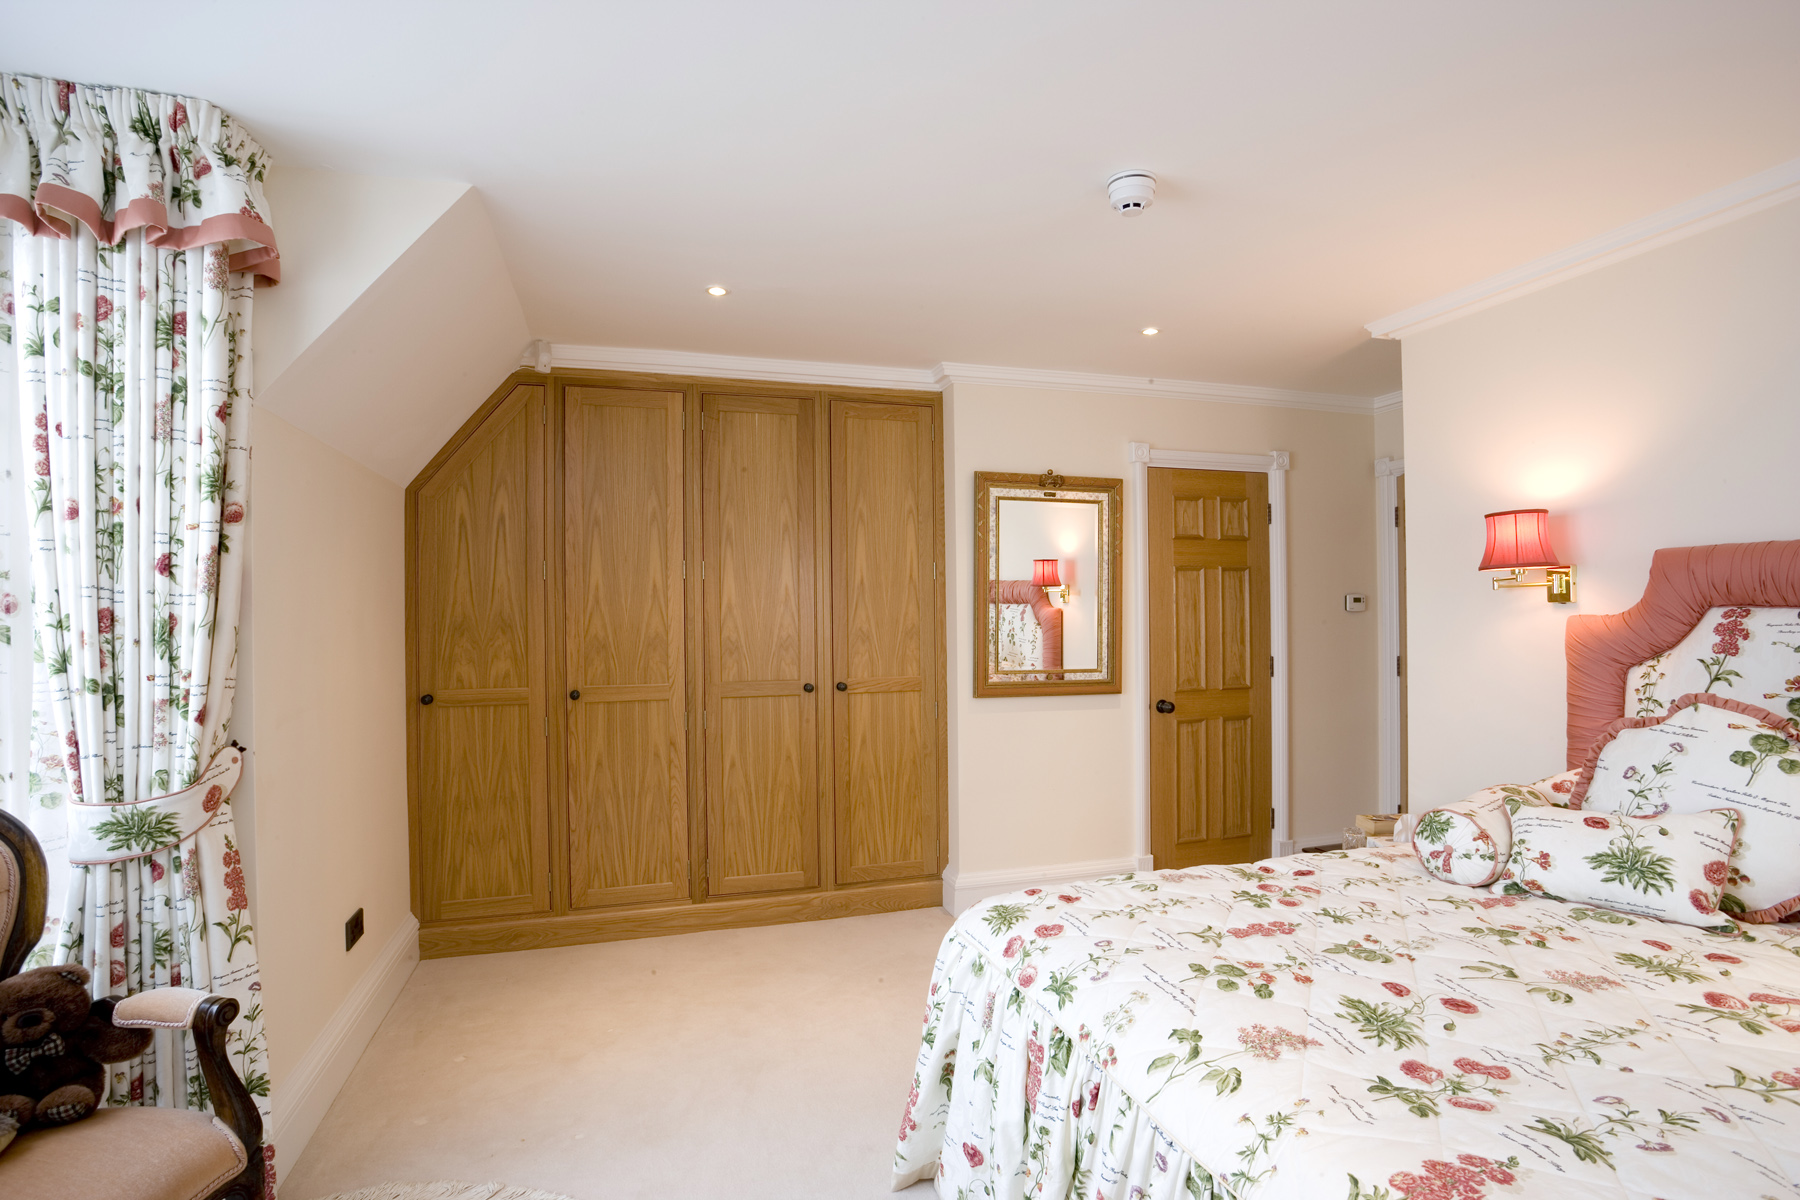 Flat Pack Fitted Bedroom Furniture Flat Pack Wardrobes Flat Pack Bedroom Furniture Oak High